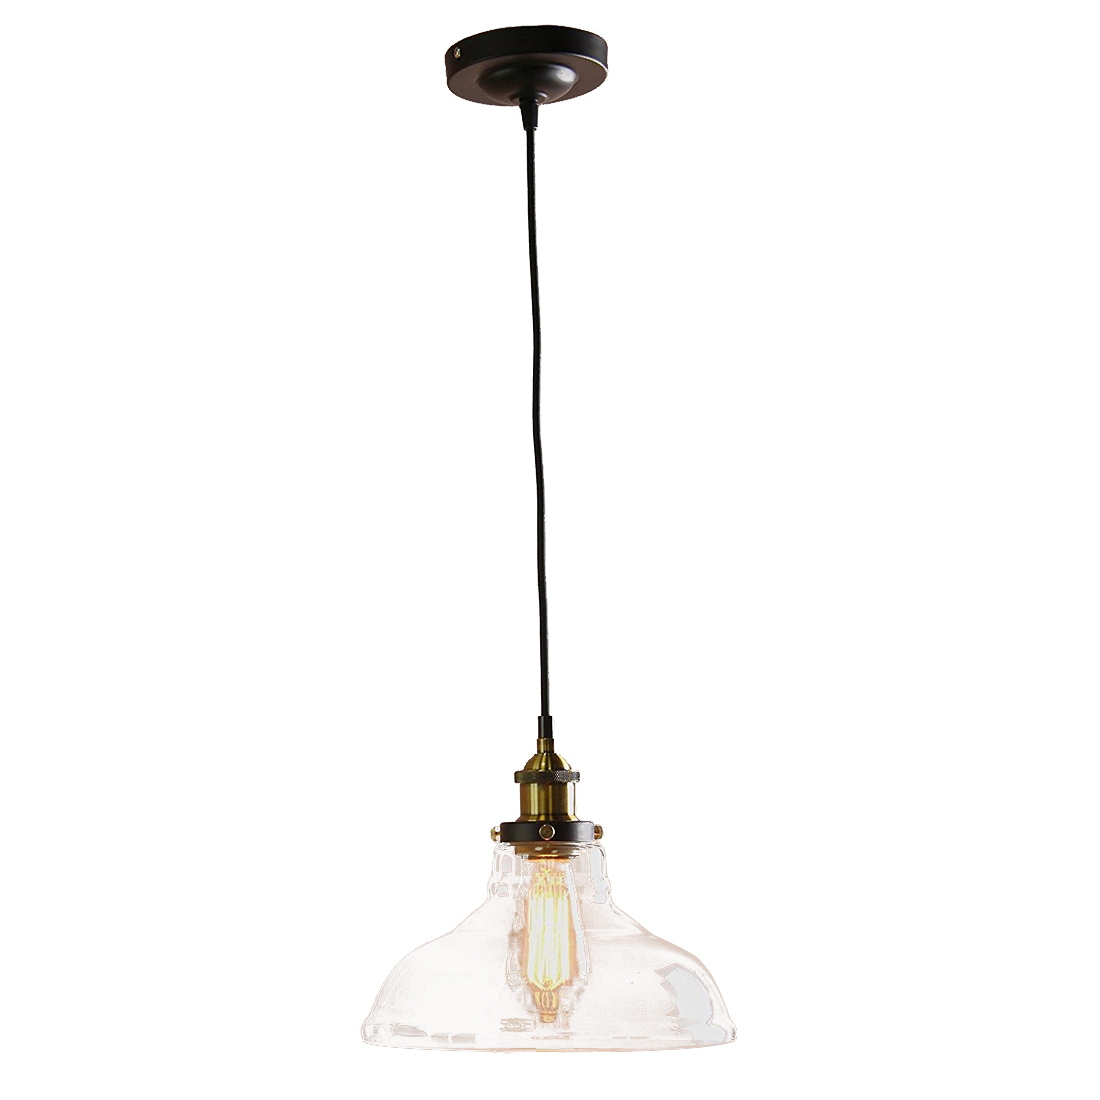 CSS Modern Vintage Amber Industrial 1 Light Iron Body Glass Shade Loft Coffee Bar Kitchen cover Chandeliers Hanging Pendant La